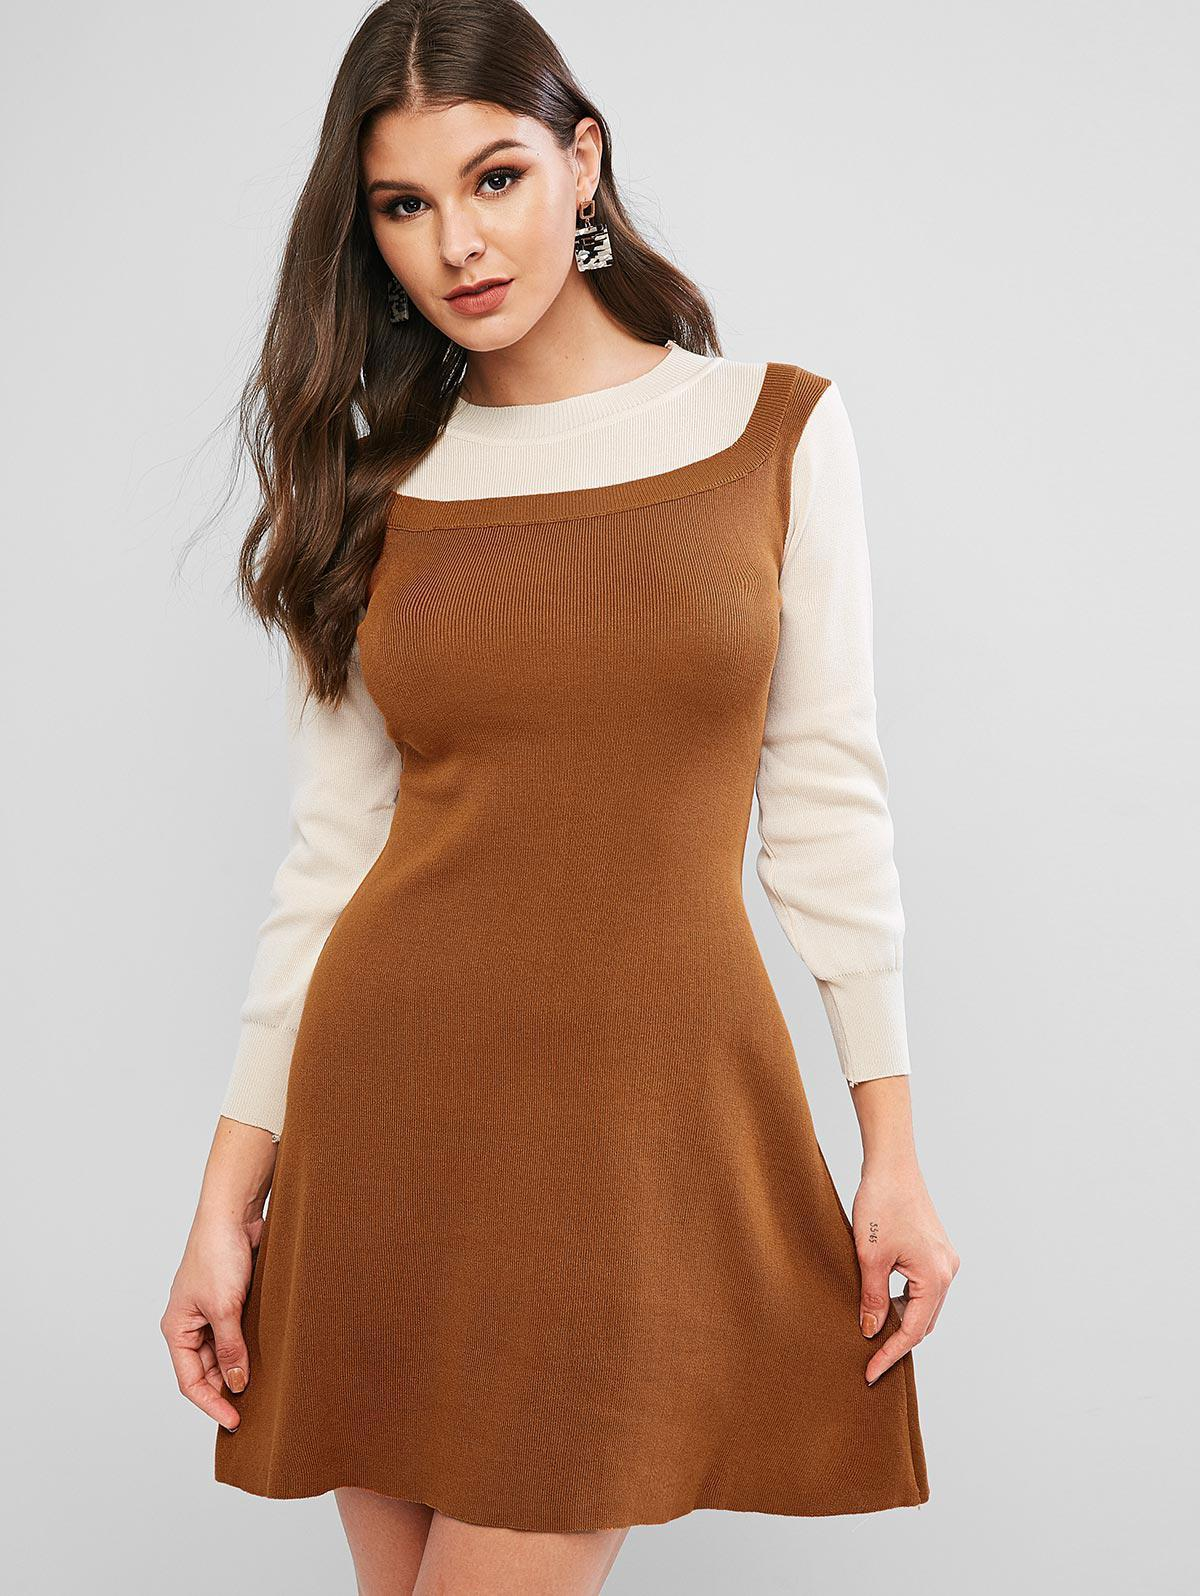 Lantern Sleeves Two Tone Flared Knit Dress